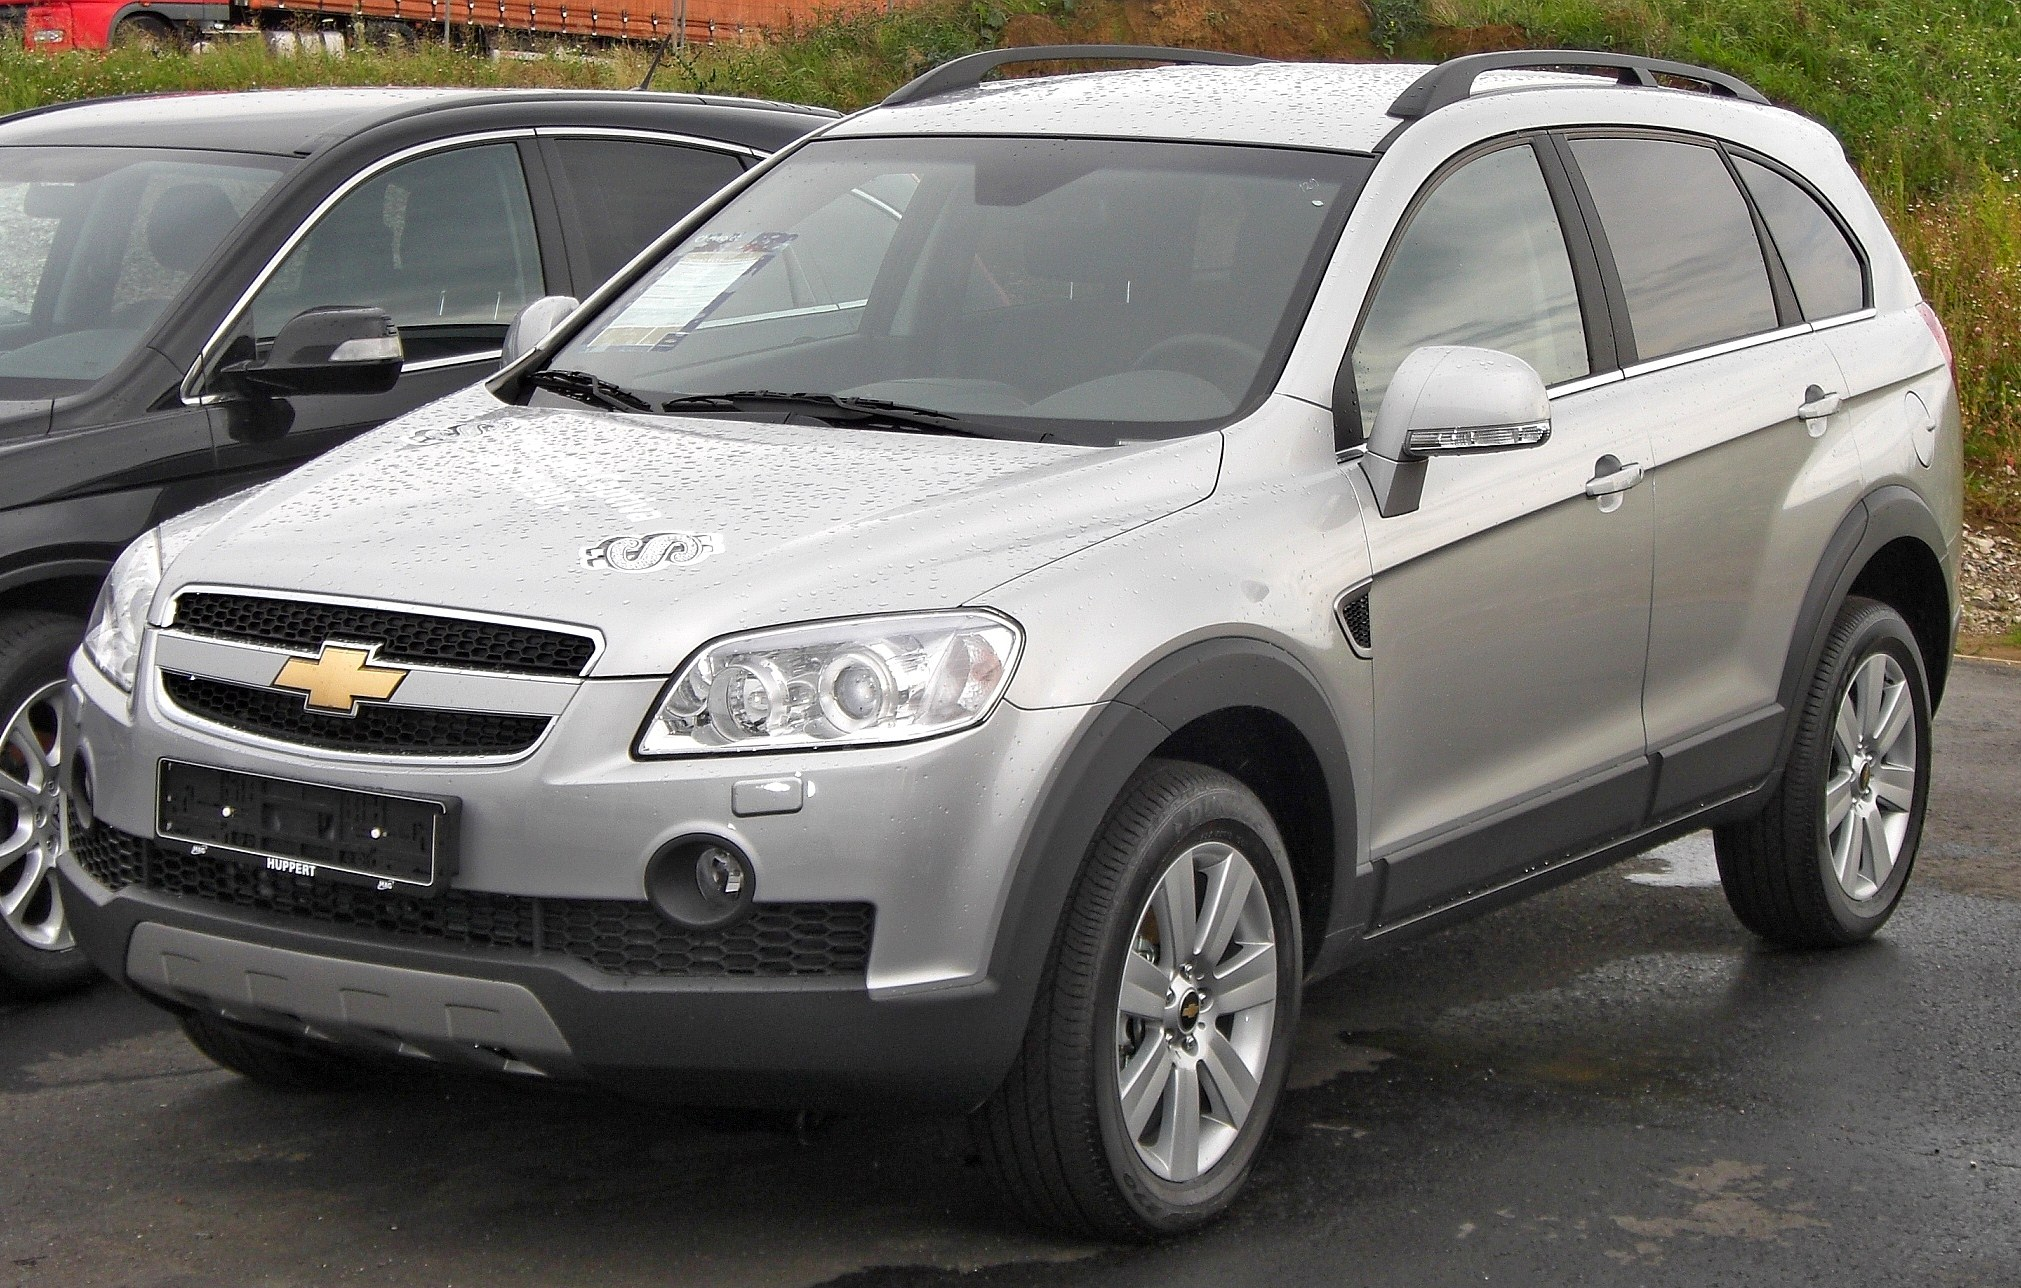 Cars chevrolet captiva #11